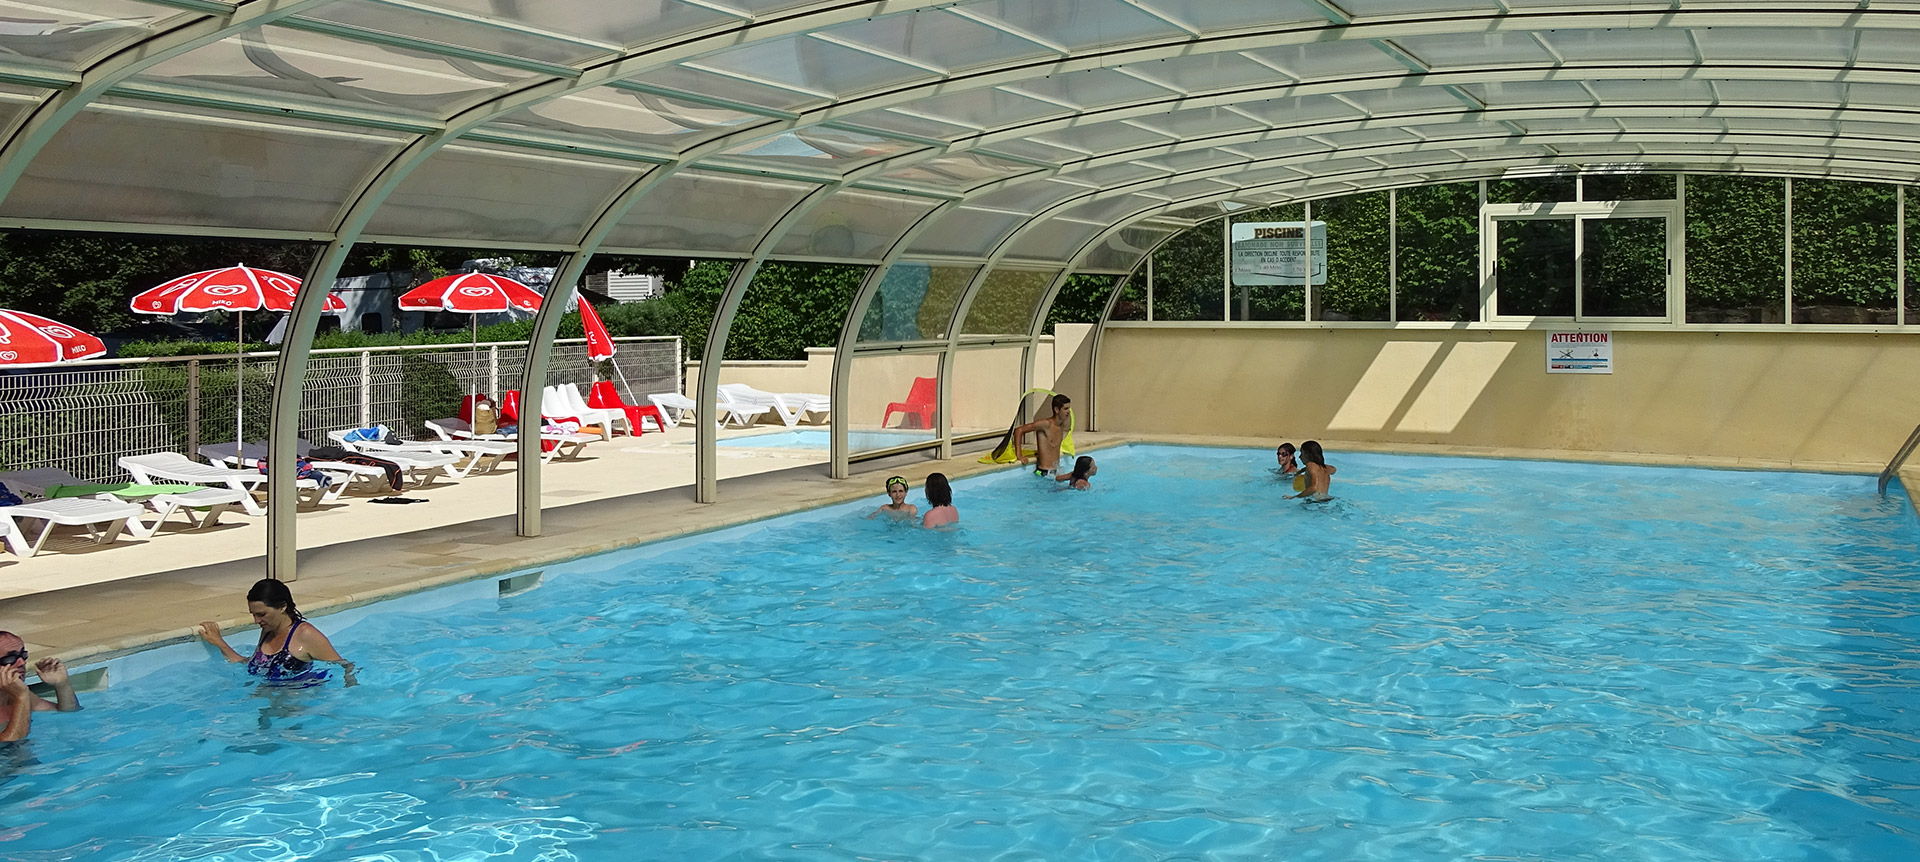 View of the heated swimming pool of tha campsite Parc du Charouzech near the lake in the région Occitanie